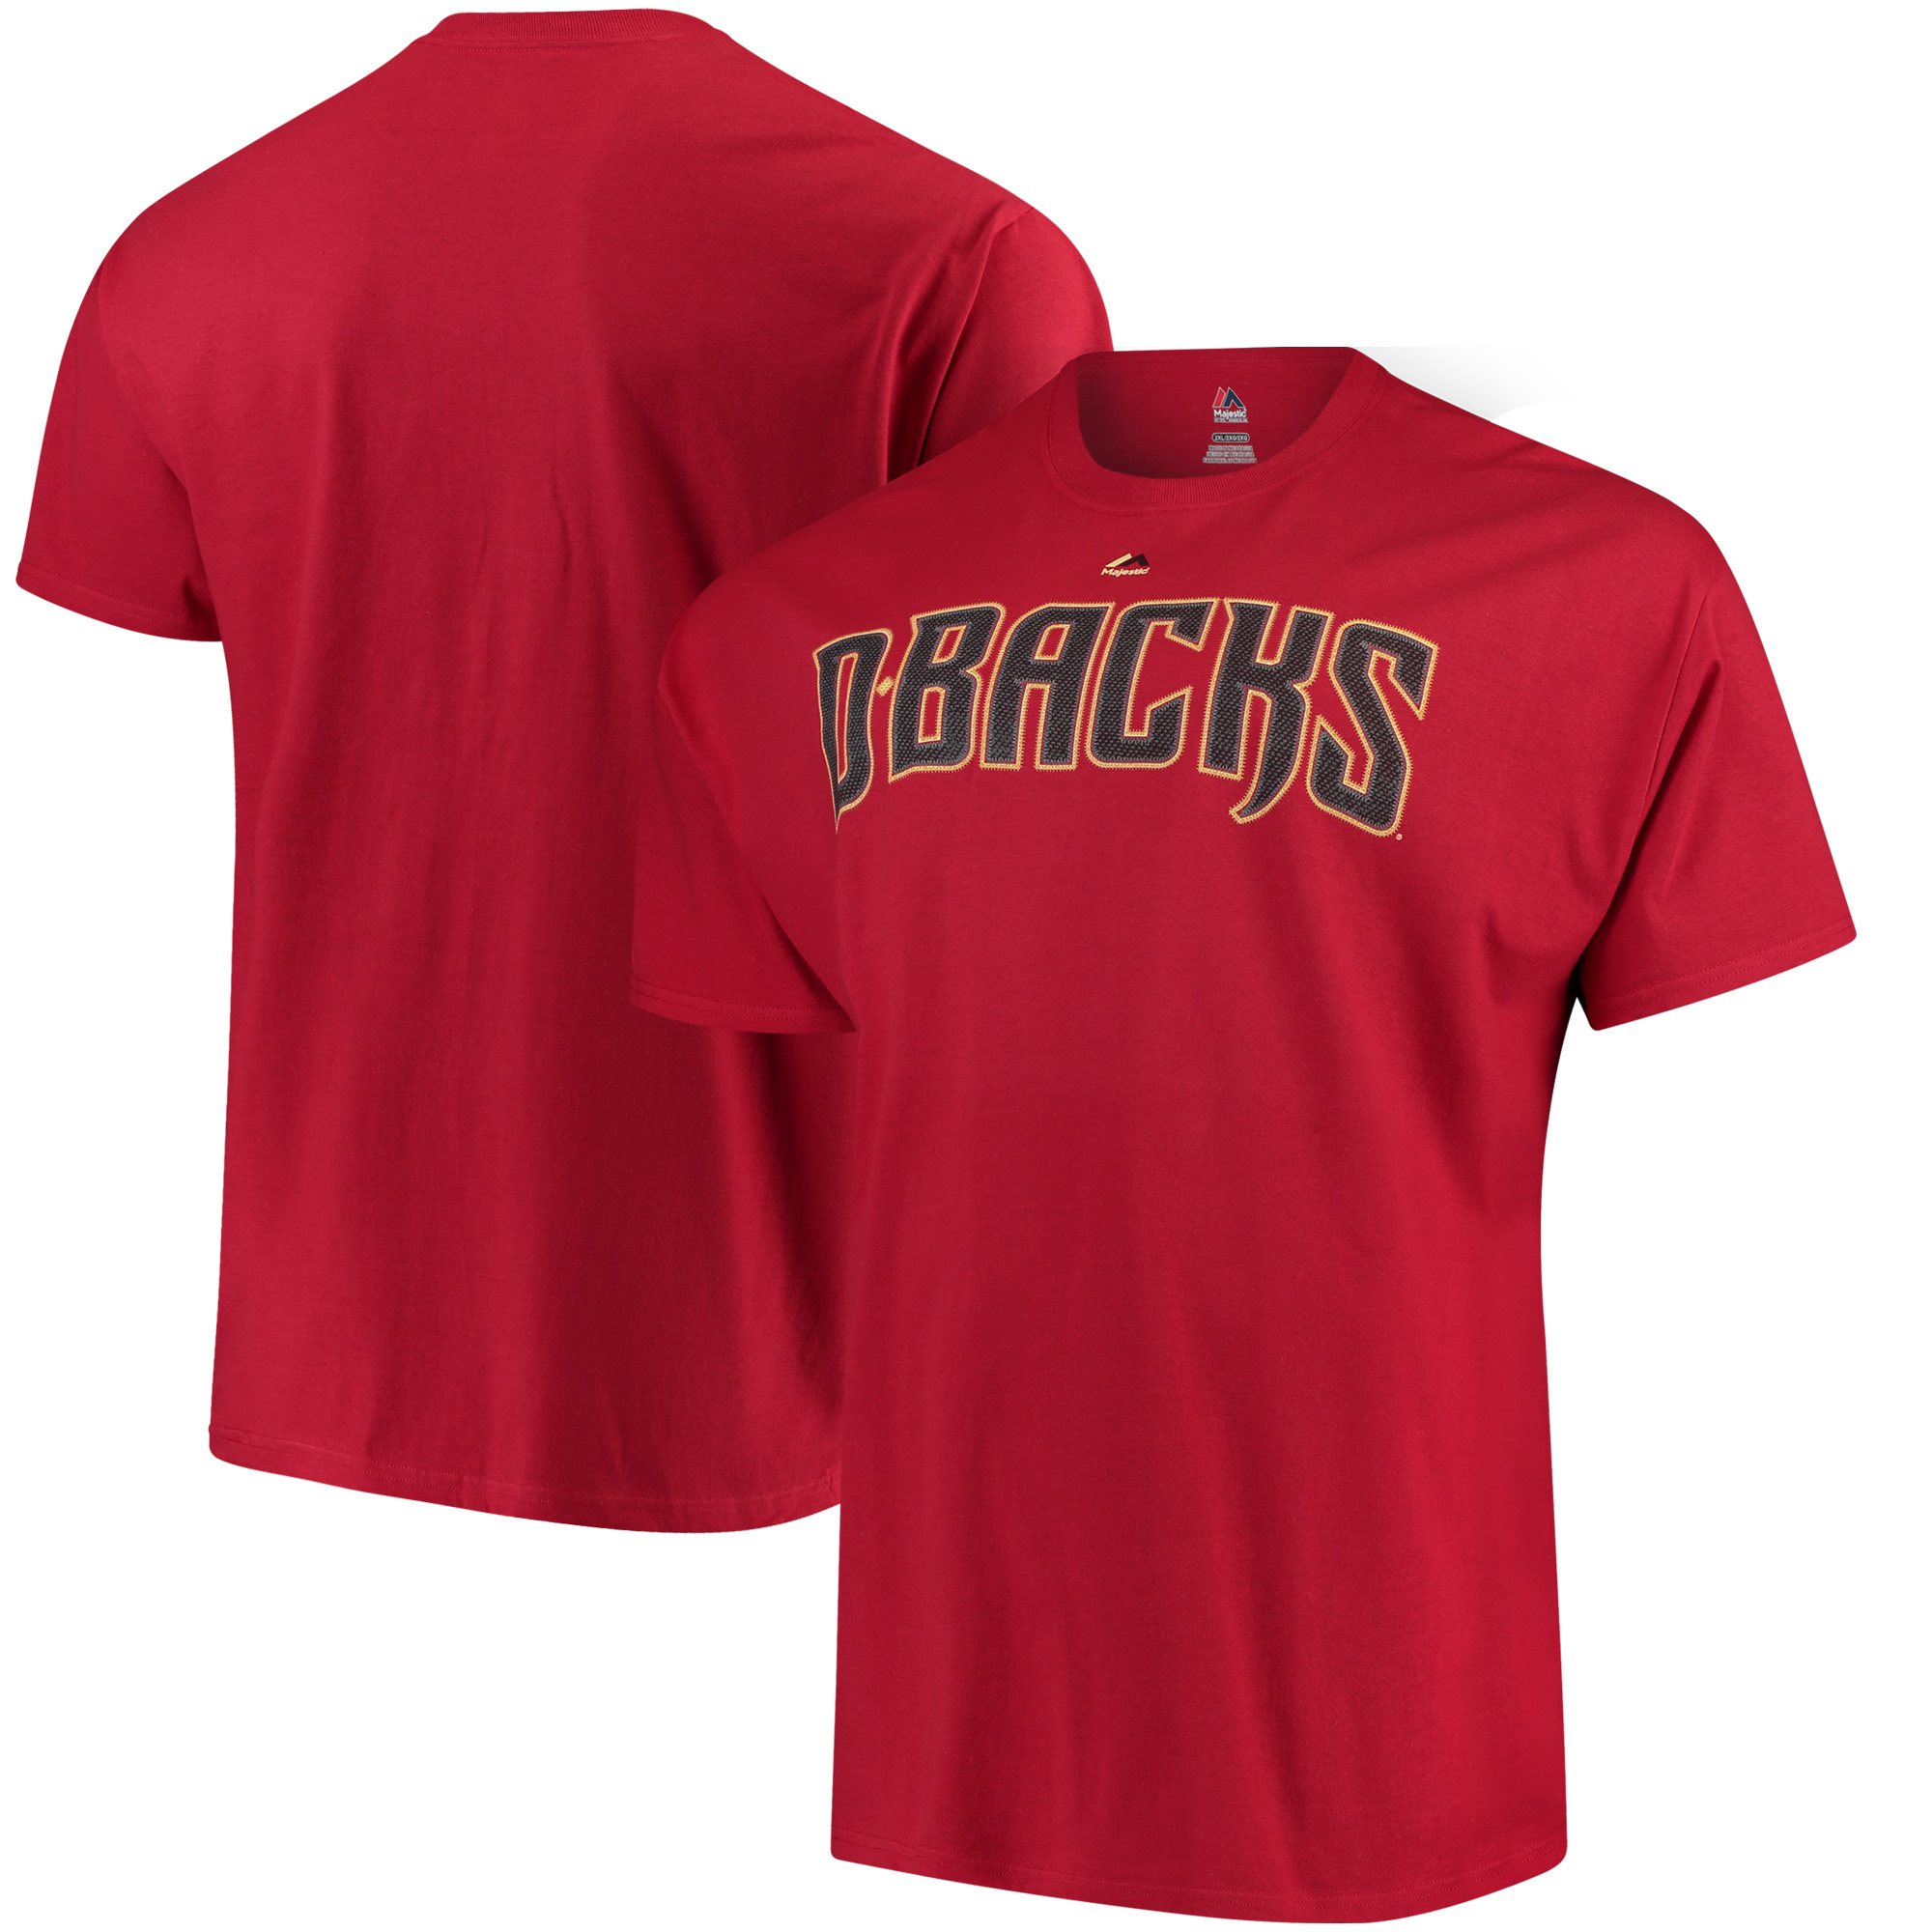 Arizona Diamondbacks Majestic Puff Ink Wordmark T-Shirt - Crimson